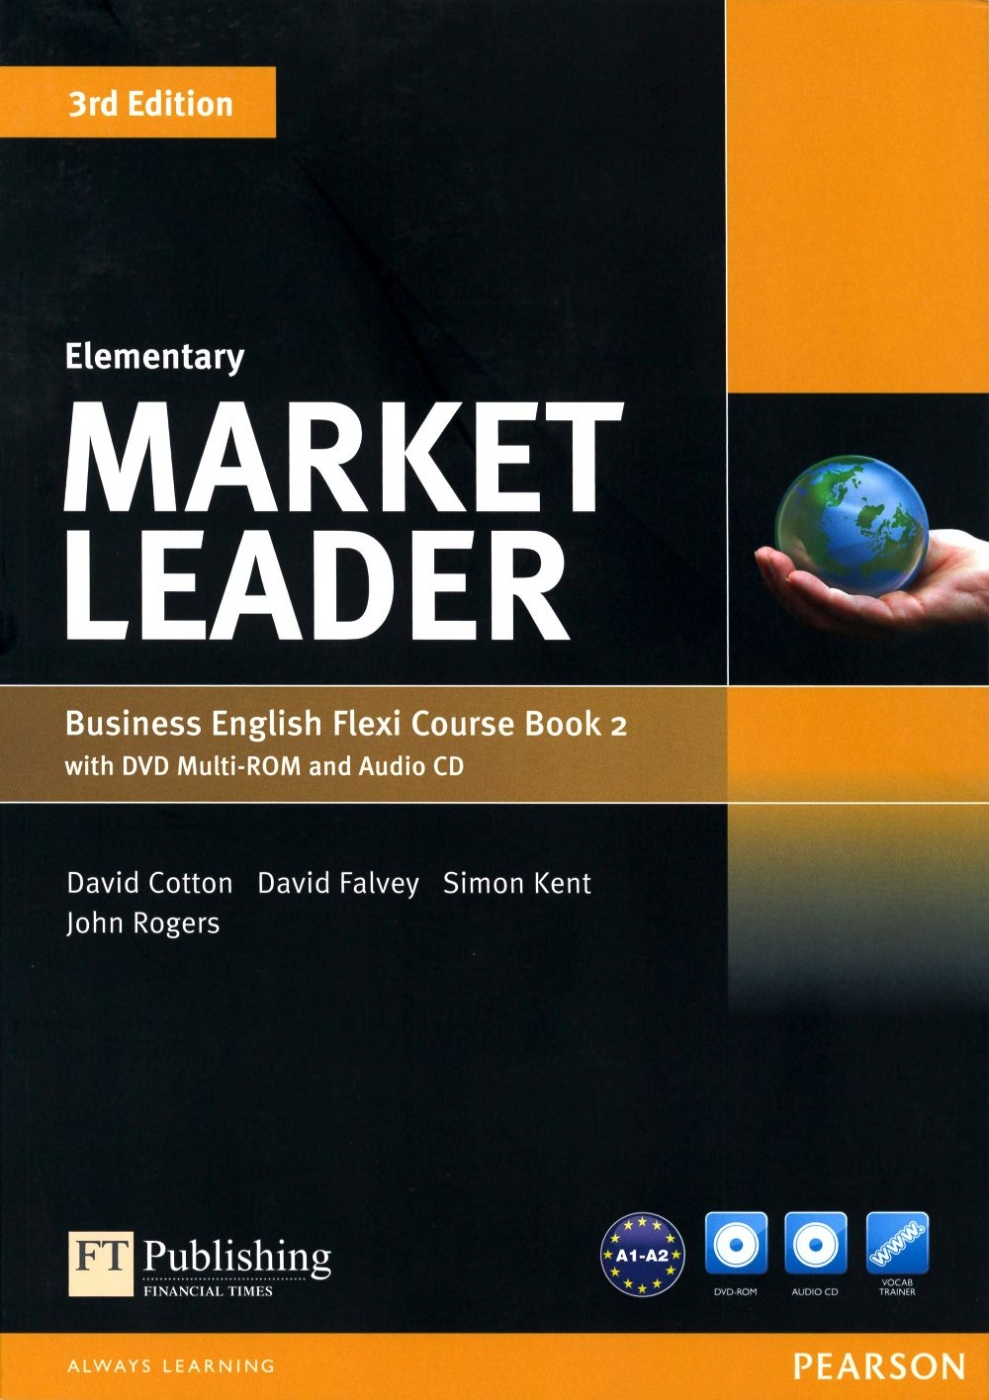 Market Leader 3/e (Elementary) Flexi Course Book 2 with DVD-ROM/1片 and Audio CD/1片